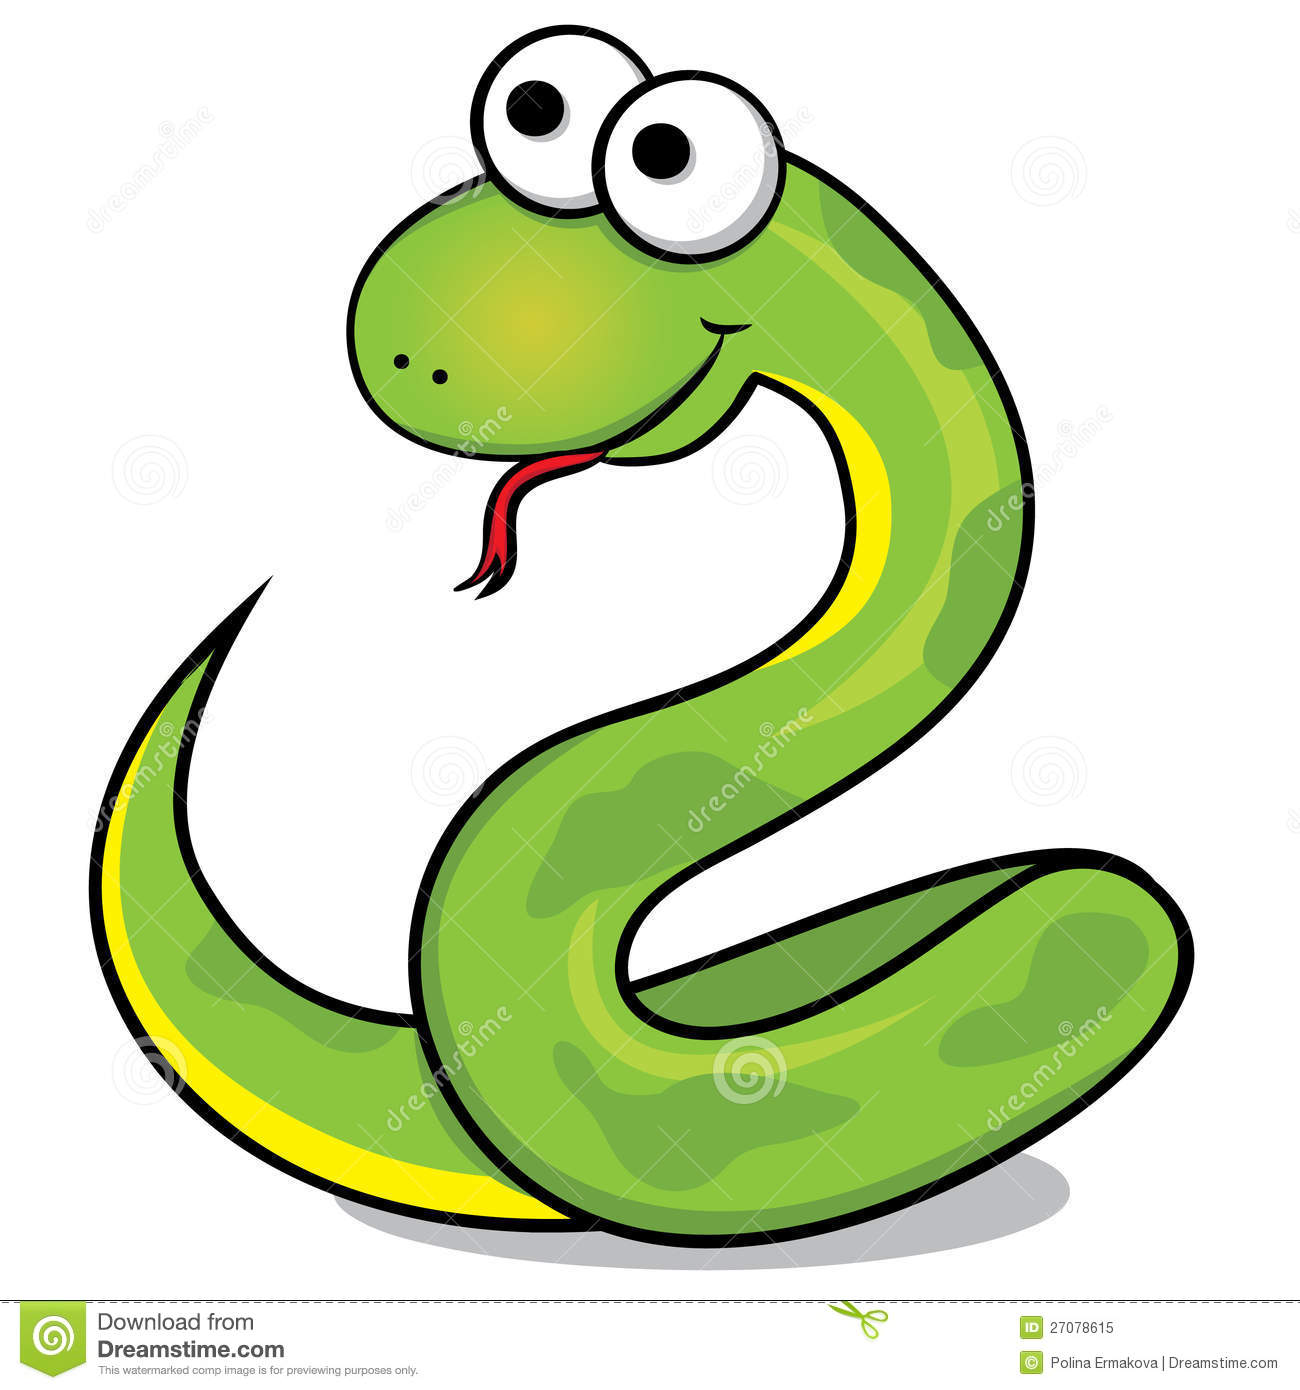 Snake clipart #10, Download drawings